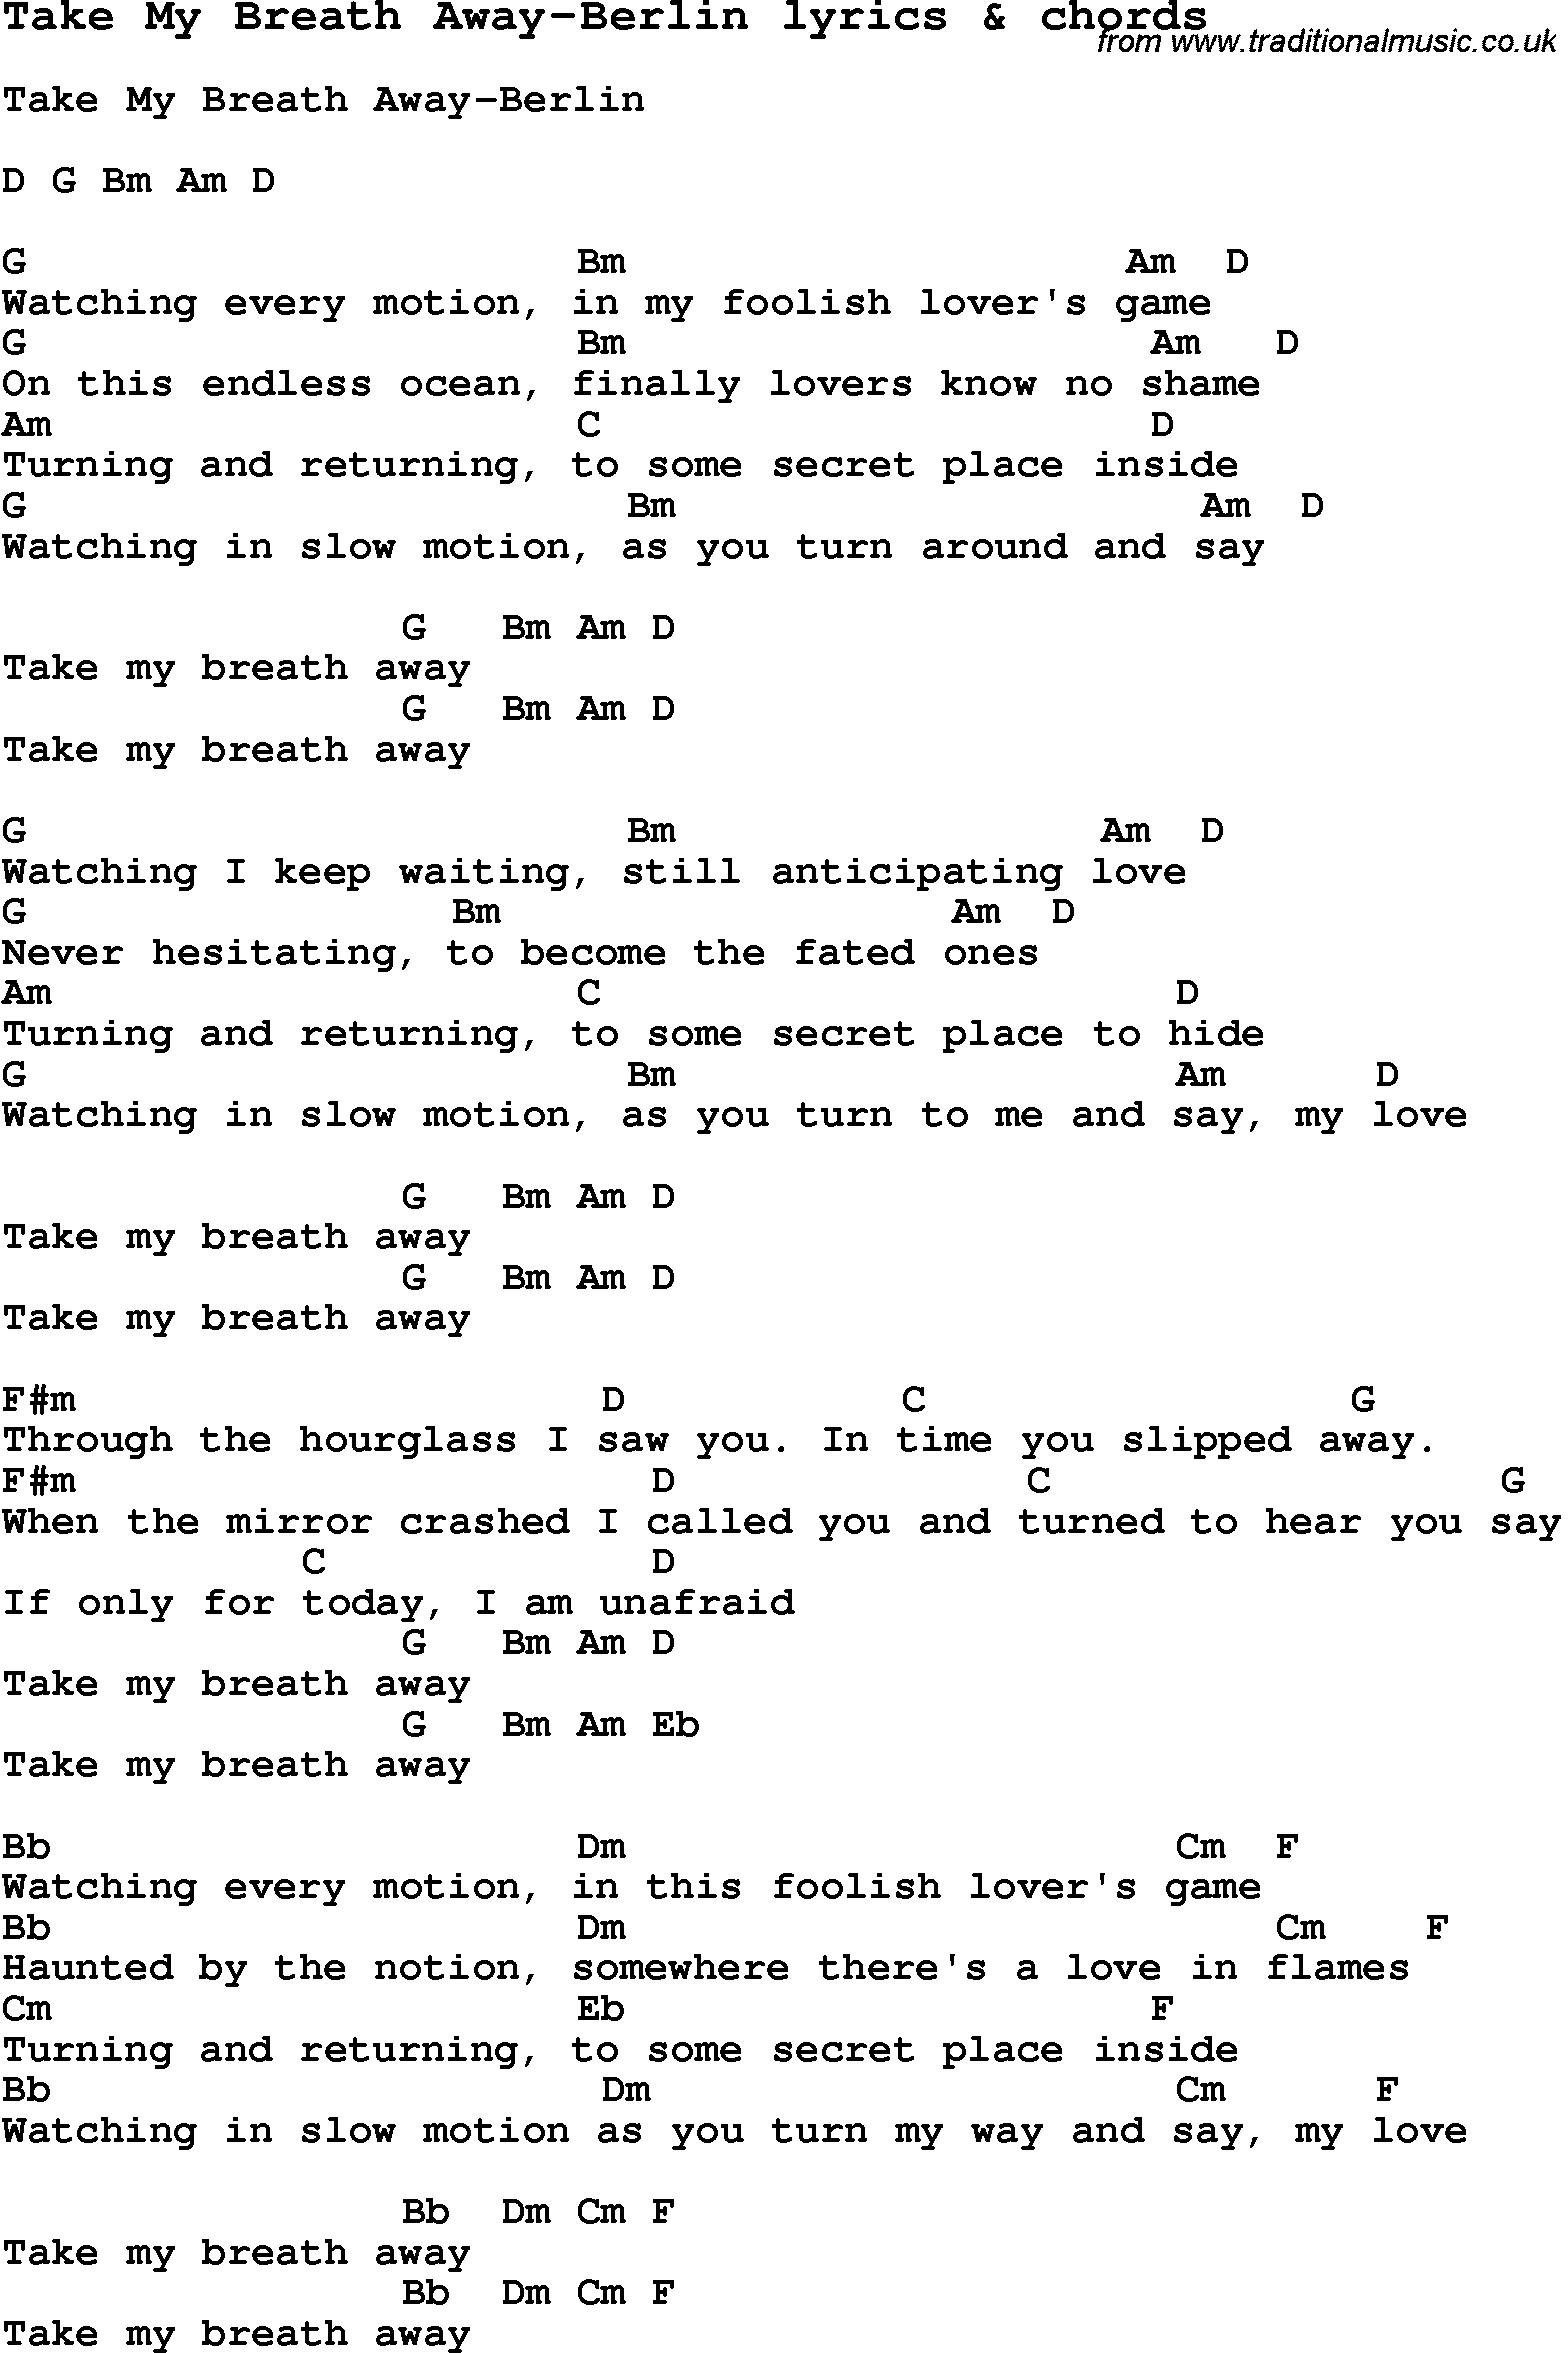 Love song lyrics fortake my breath away berlin with chords love song lyrics for take my breath away berlin with chords for ukulele hexwebz Images